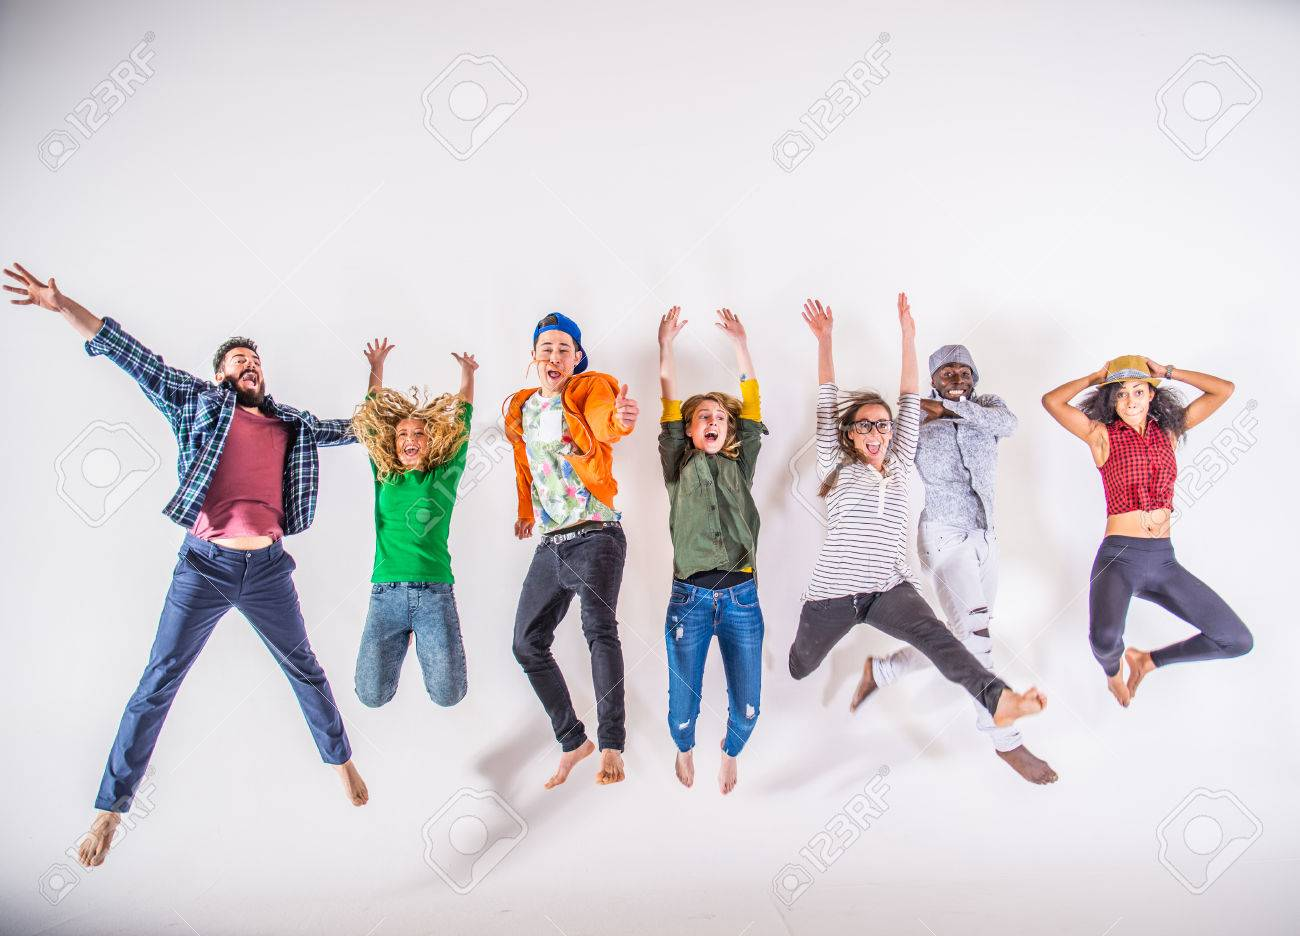 Multi-ethnic group of friends jumping on white background, studio shot - 57813167